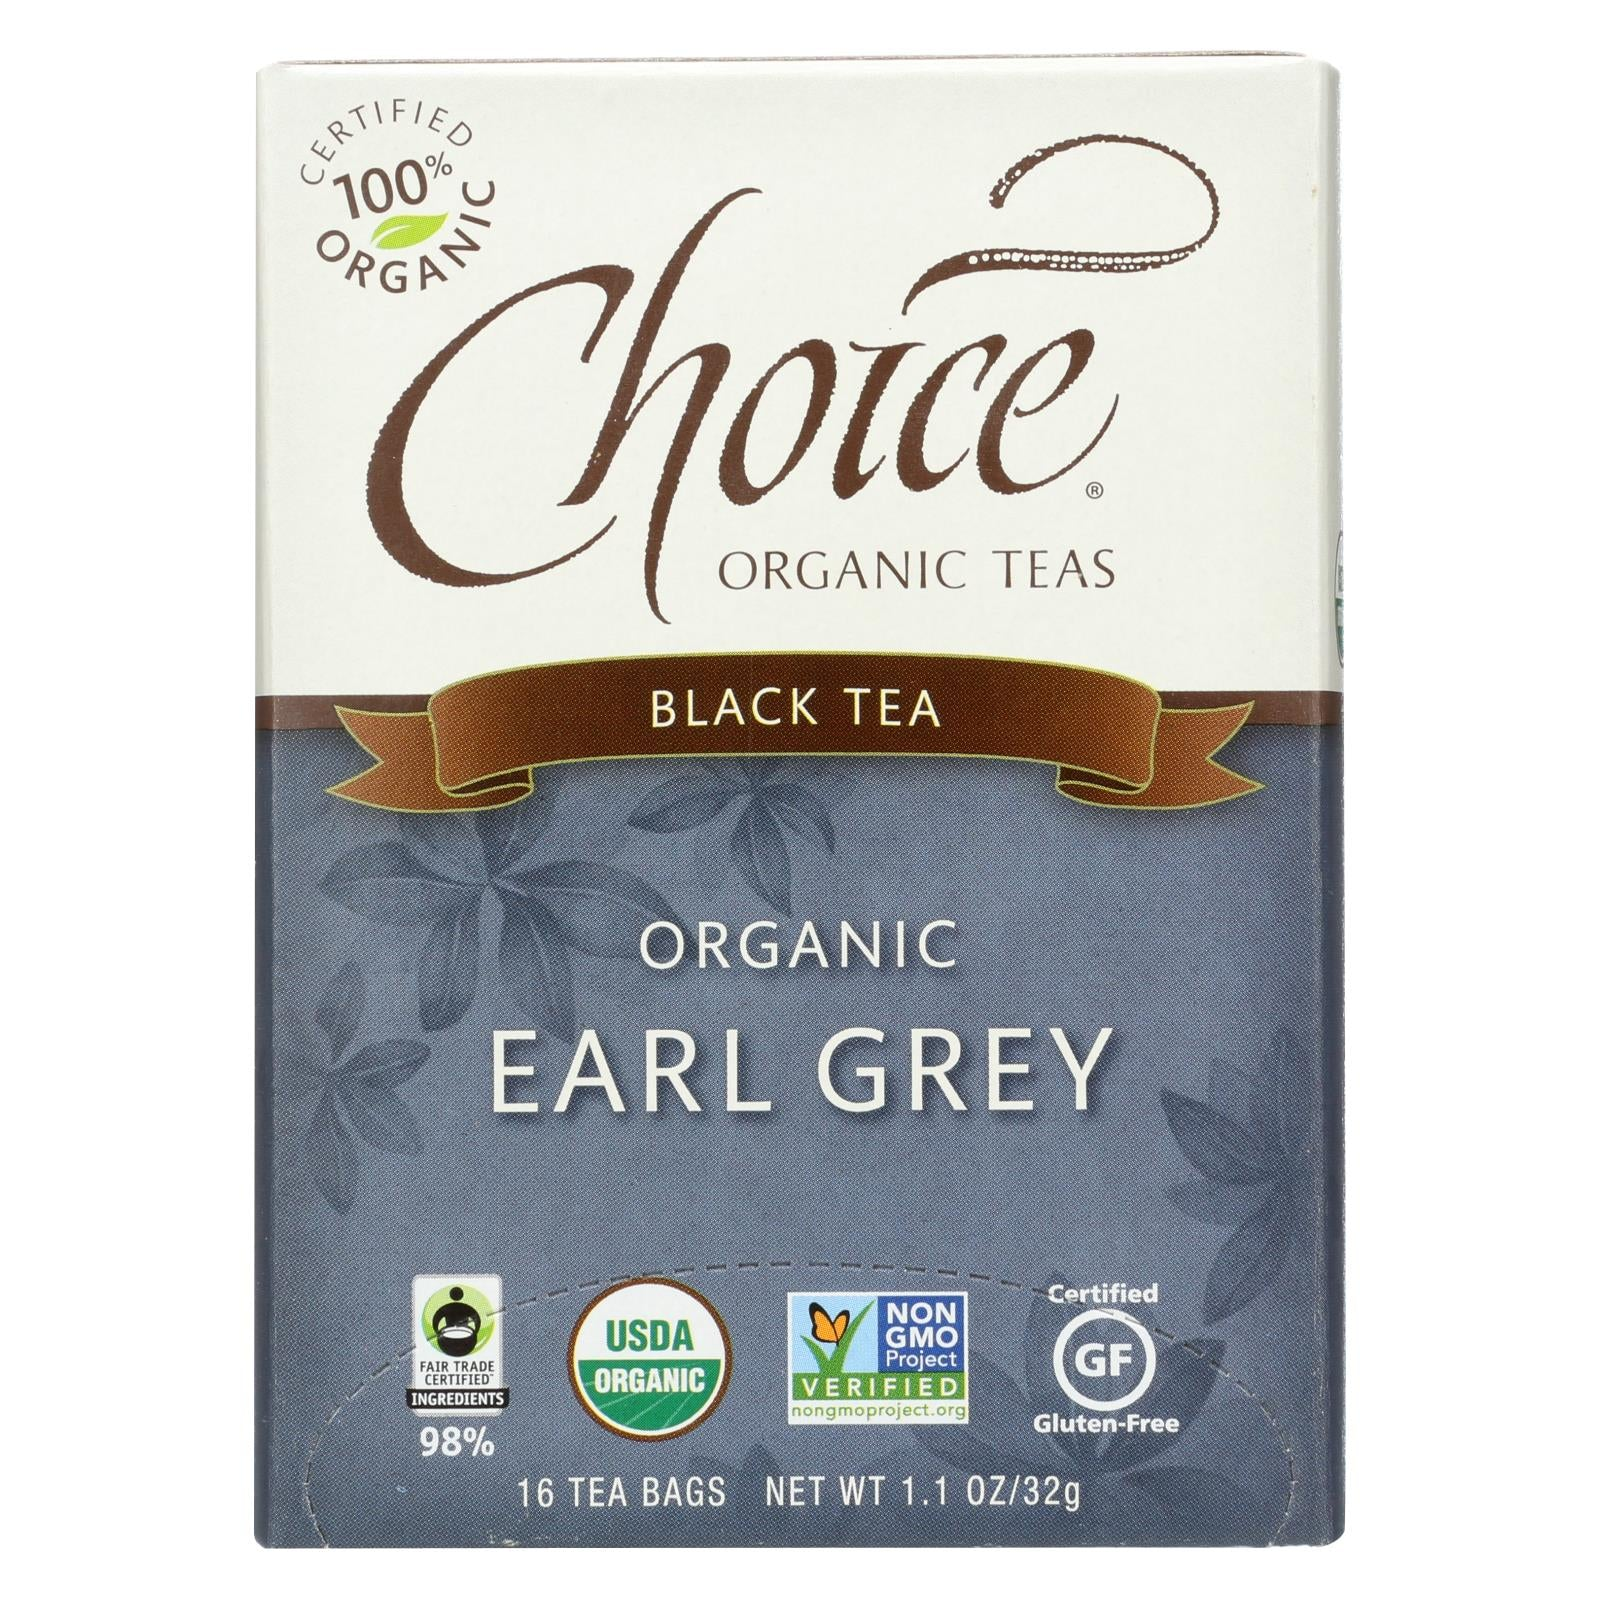 Buy Choice Organic Teas - Earl Grey Tea - 16 Bags - Case of 6 - Black Tea from Veroeco.com